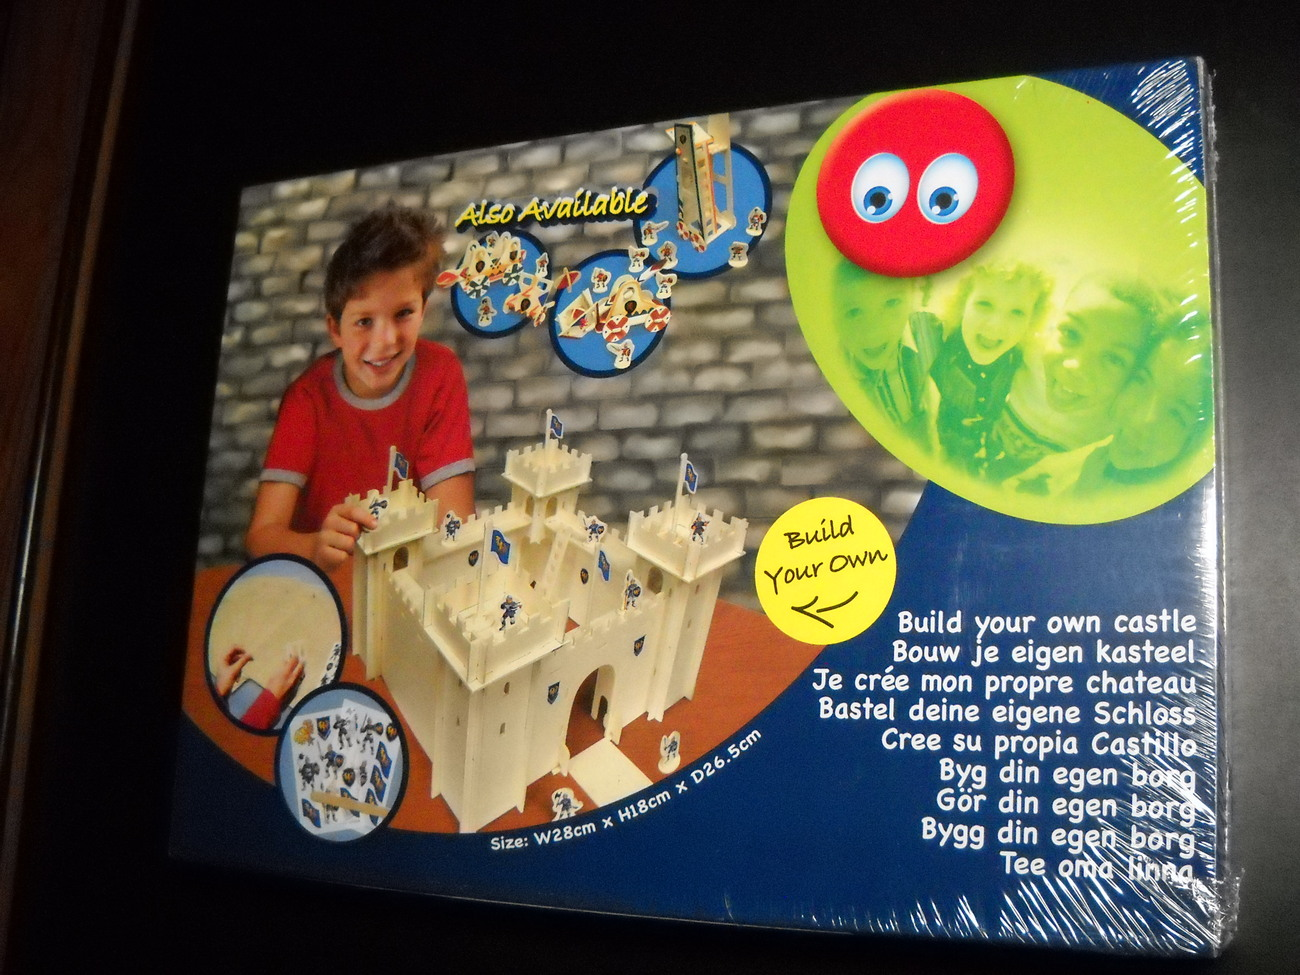 Jigsaw puzzle build your own castle netherlands sealed 01